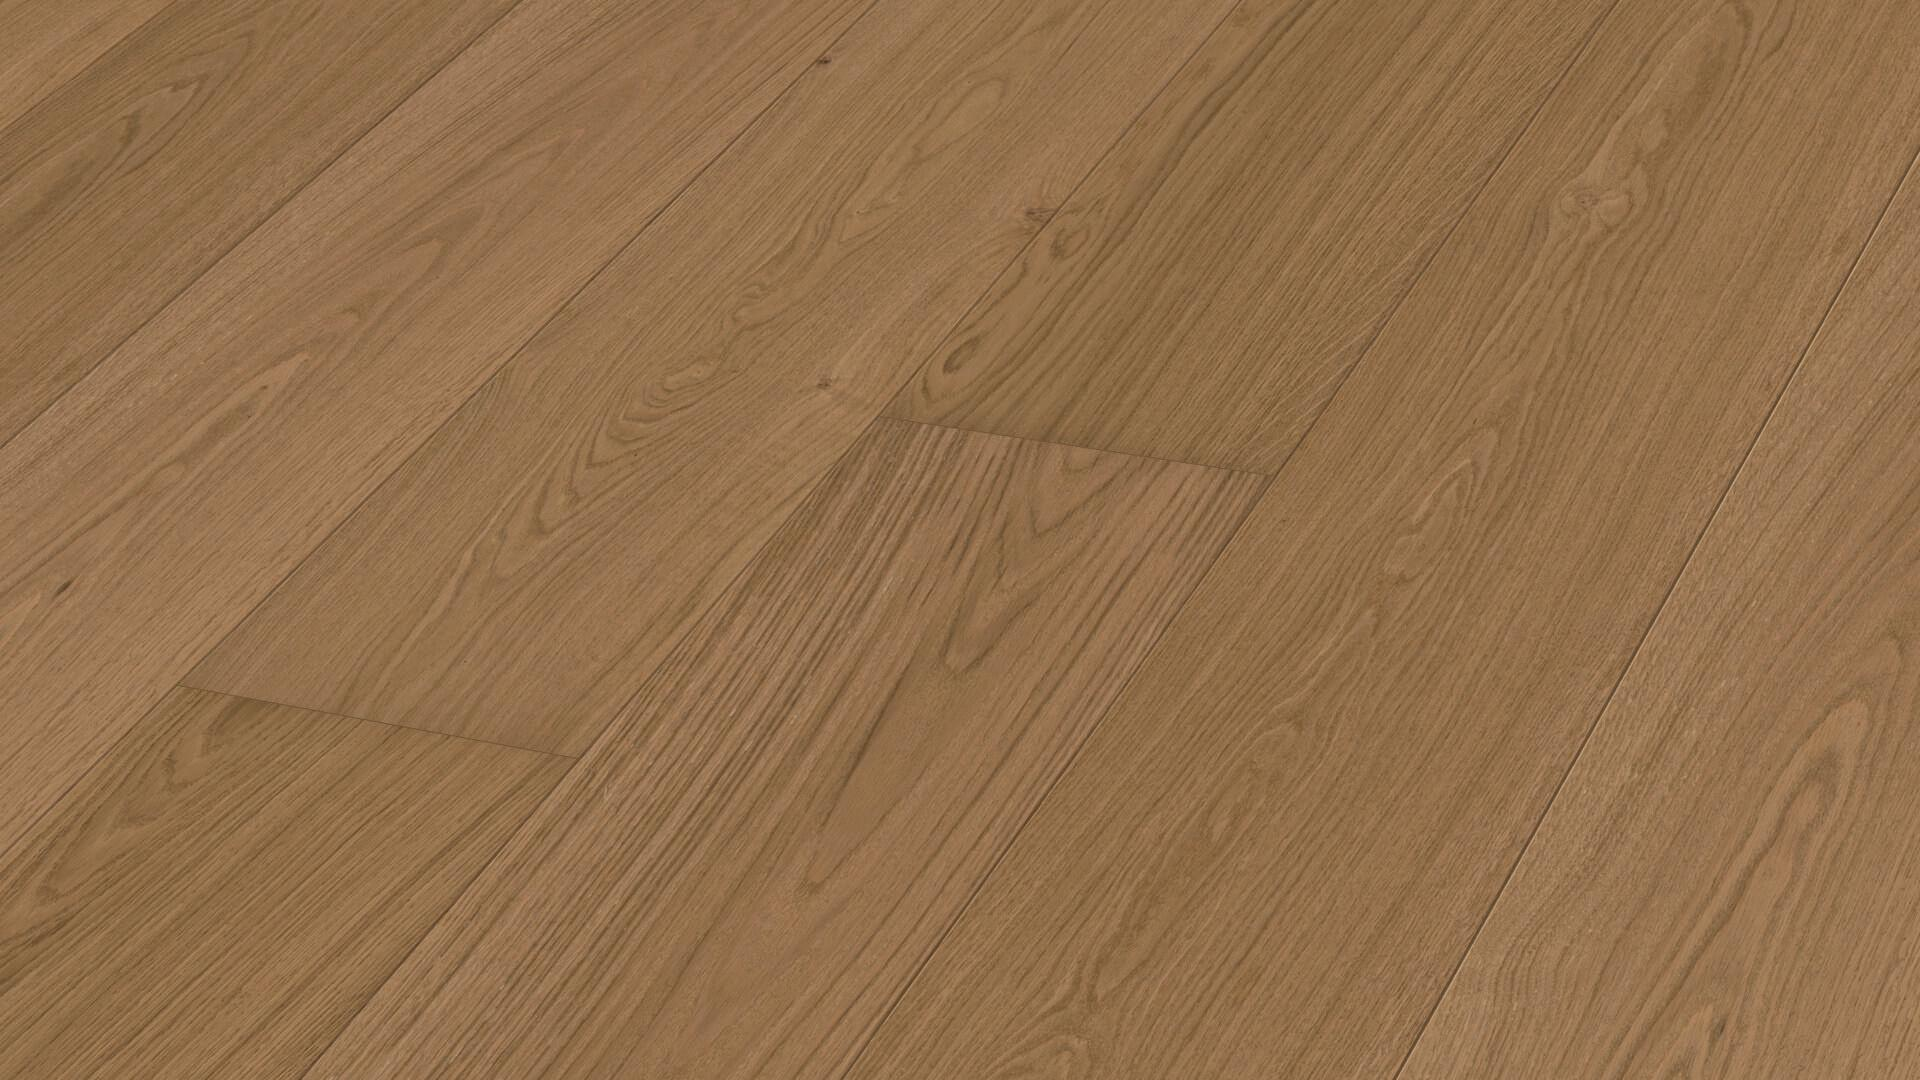 Lindura wood flooring HD 400 Natural light brown oak 8731